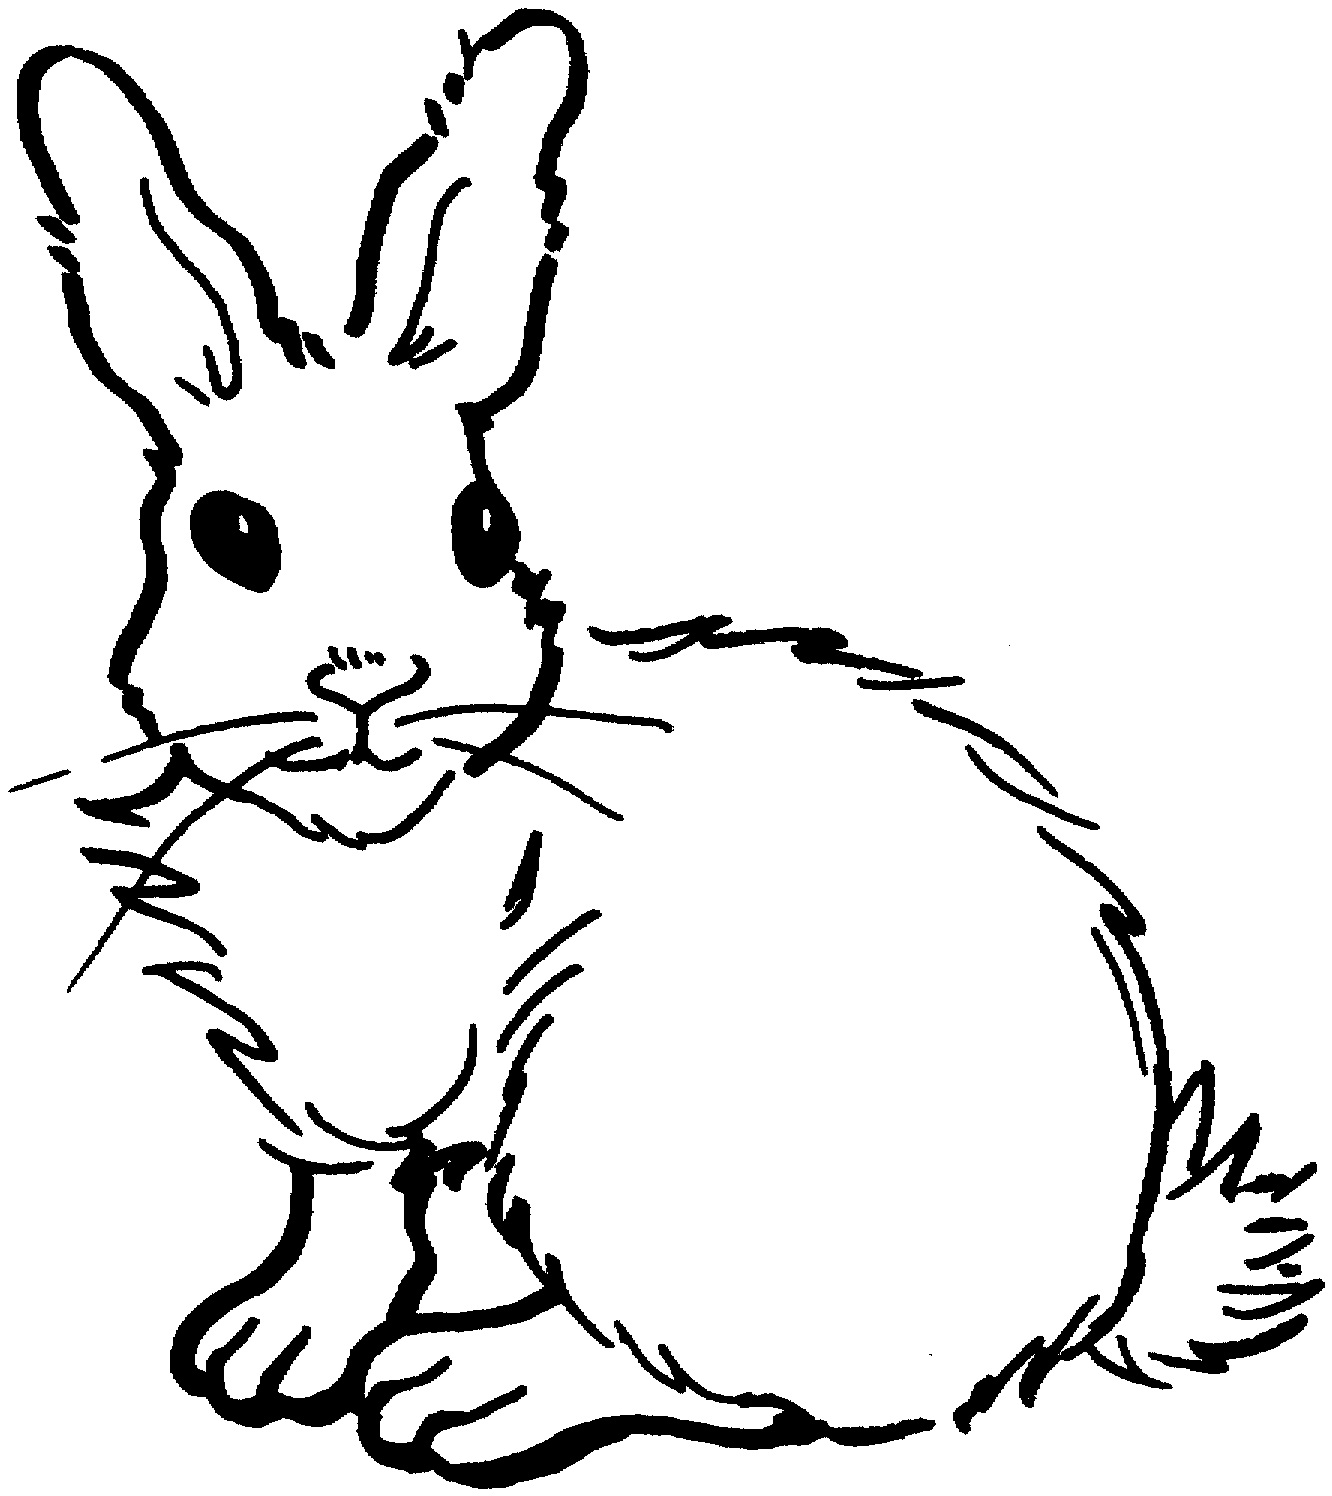 Drawn rabbit hand drawn Rabbit Rabbit Jack Download Jack